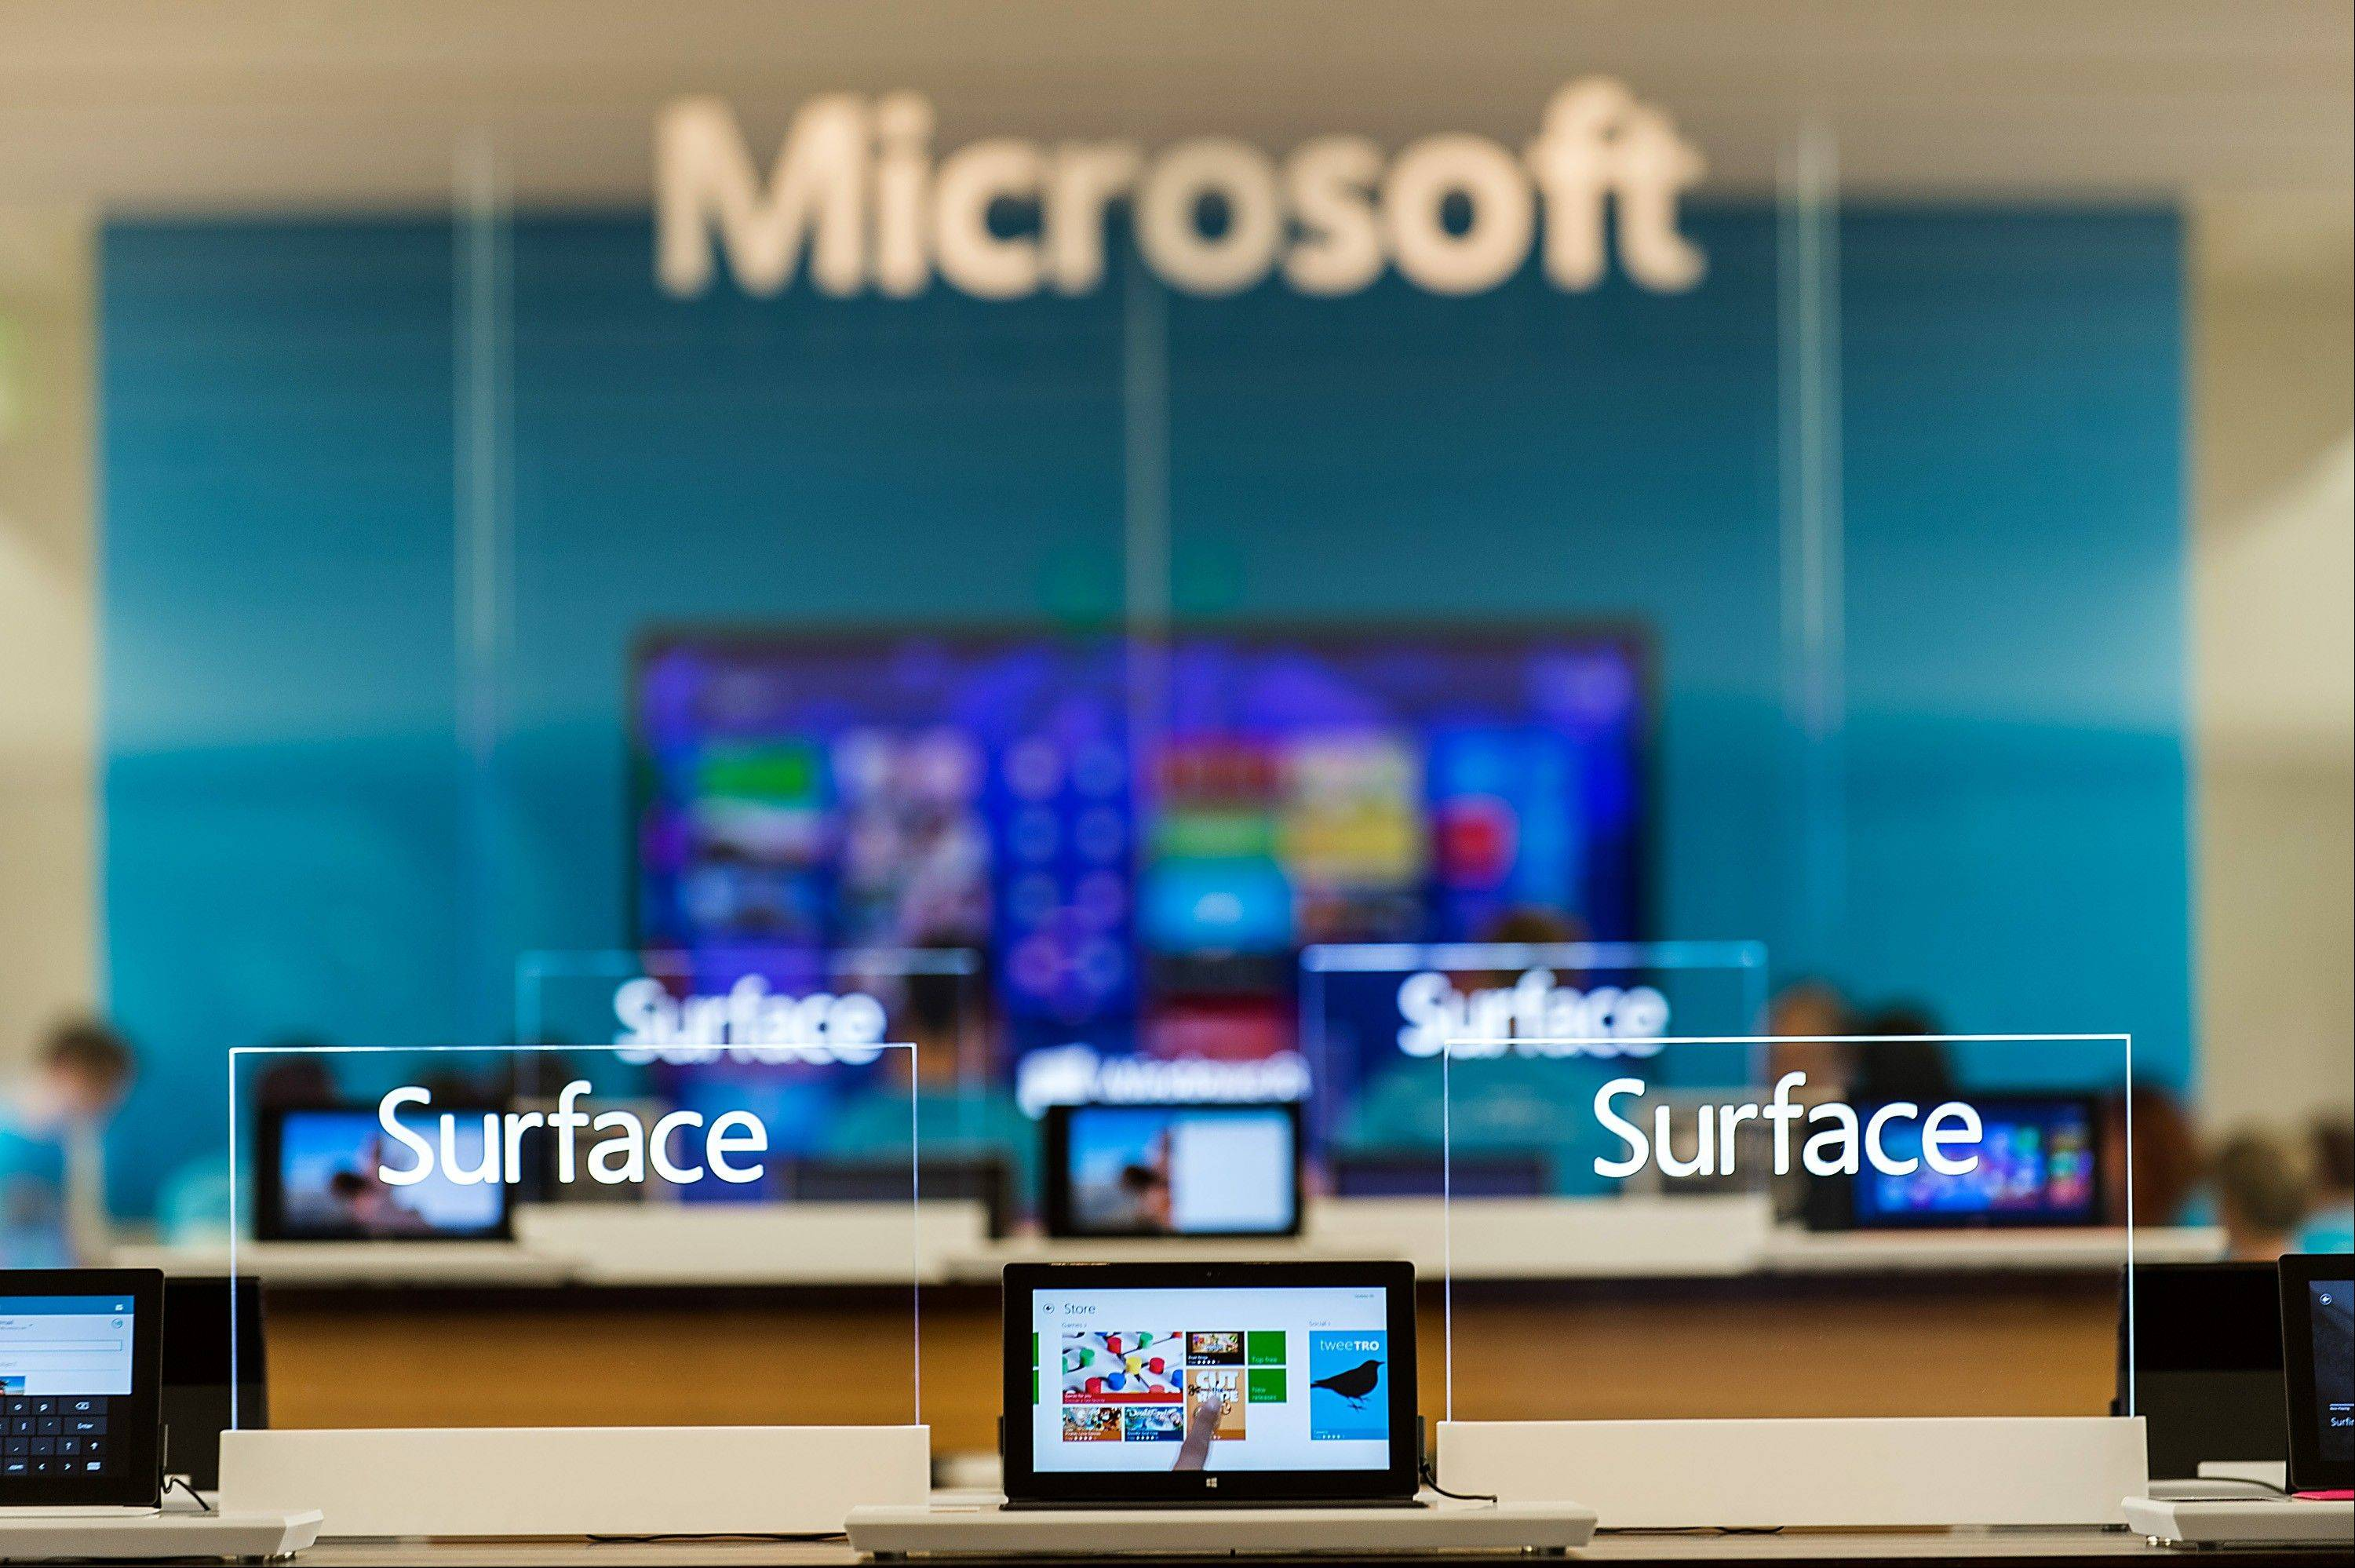 Microsoft Corp.�s policy changes for its Internet products including Hotmail and Bing are being formally examined by European data protection regulators for potential privacy issues.